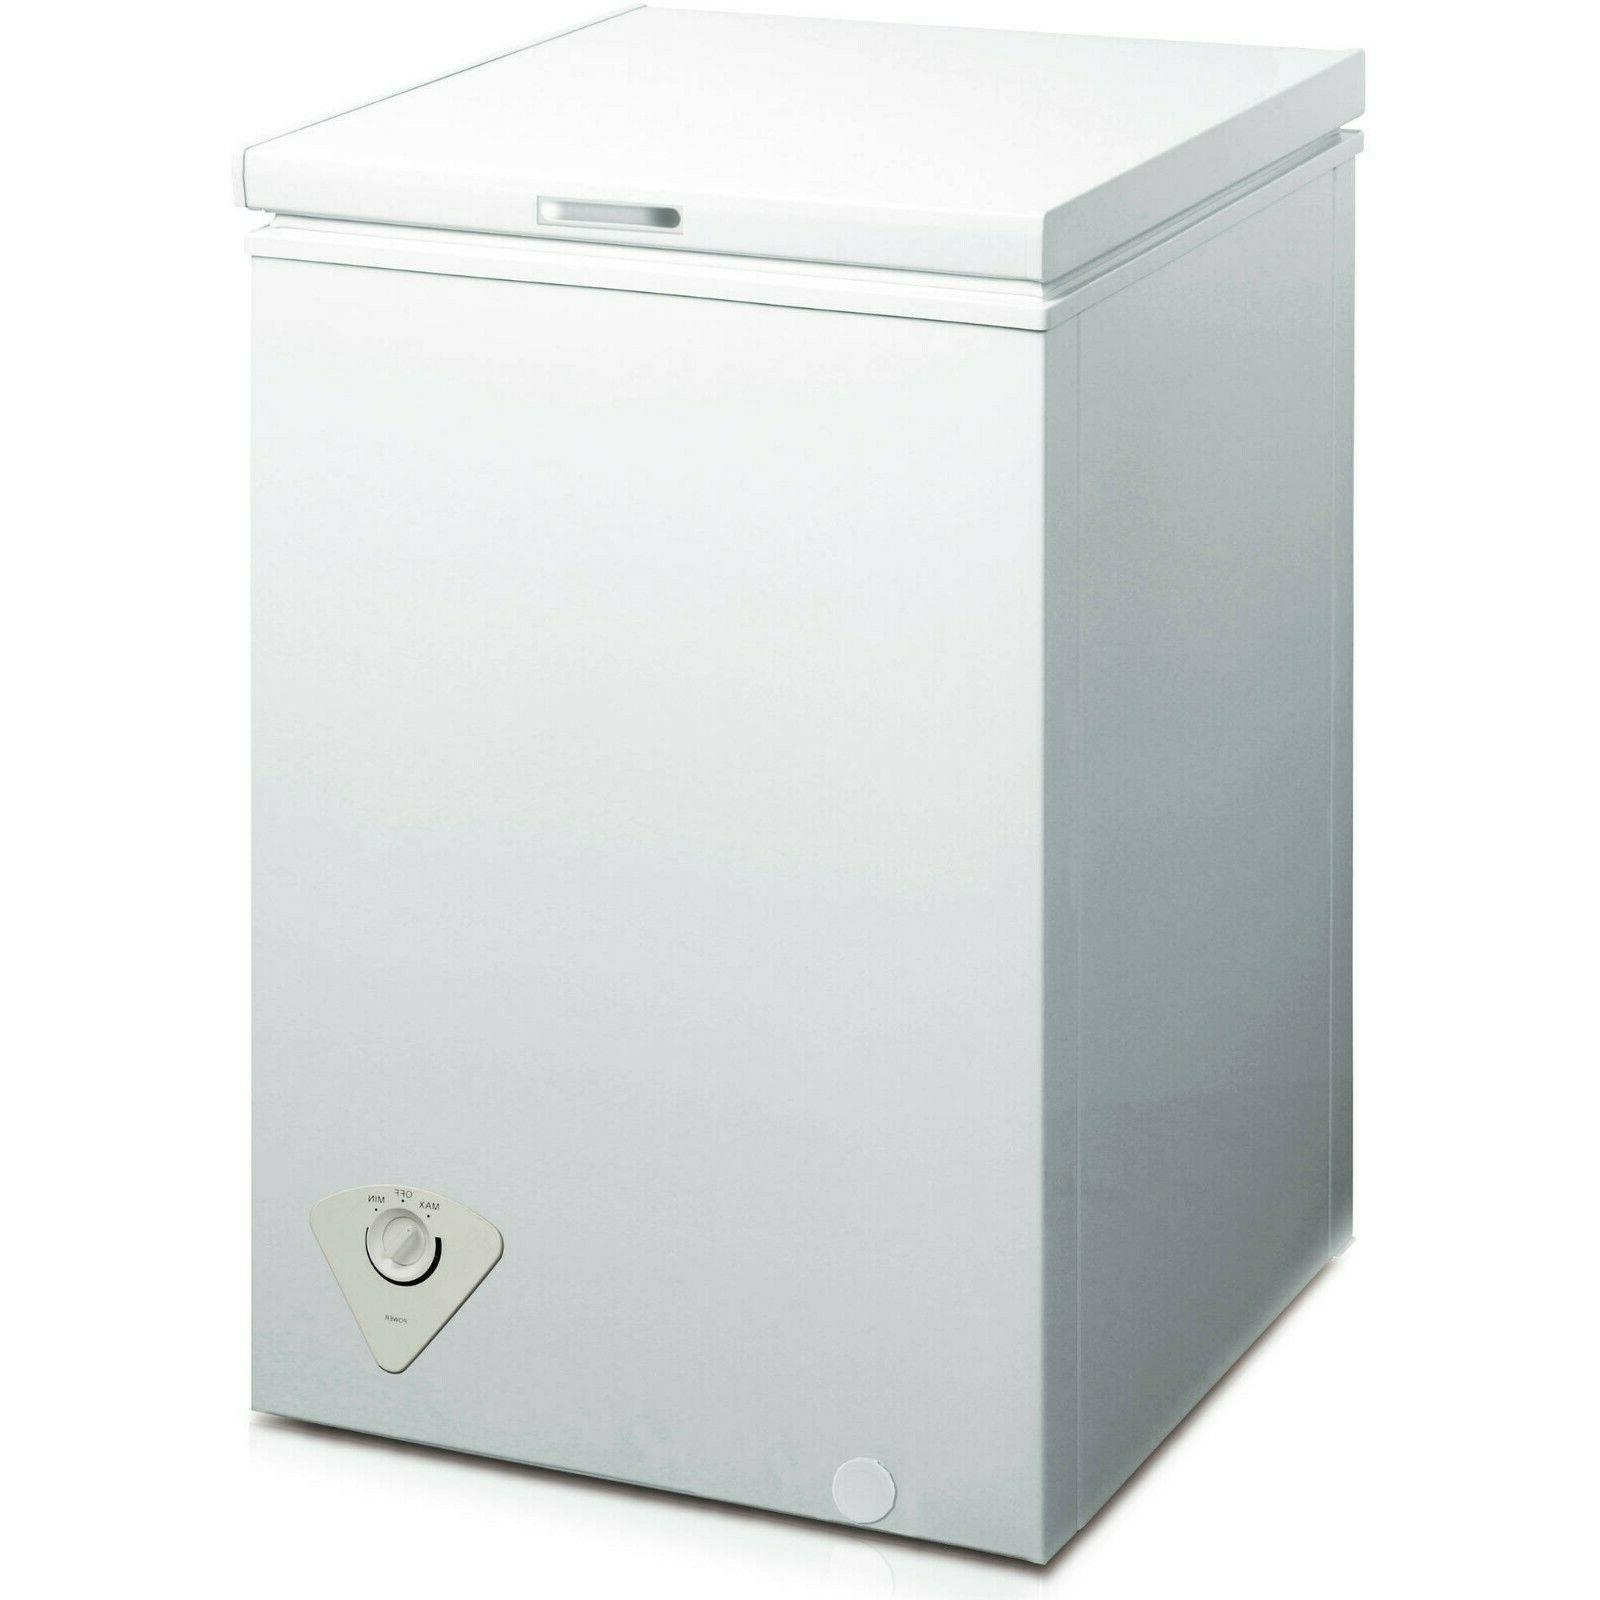 Chest Freezer Storage Ice Deep Freeze 3.5 Cu Ft Quick Defros